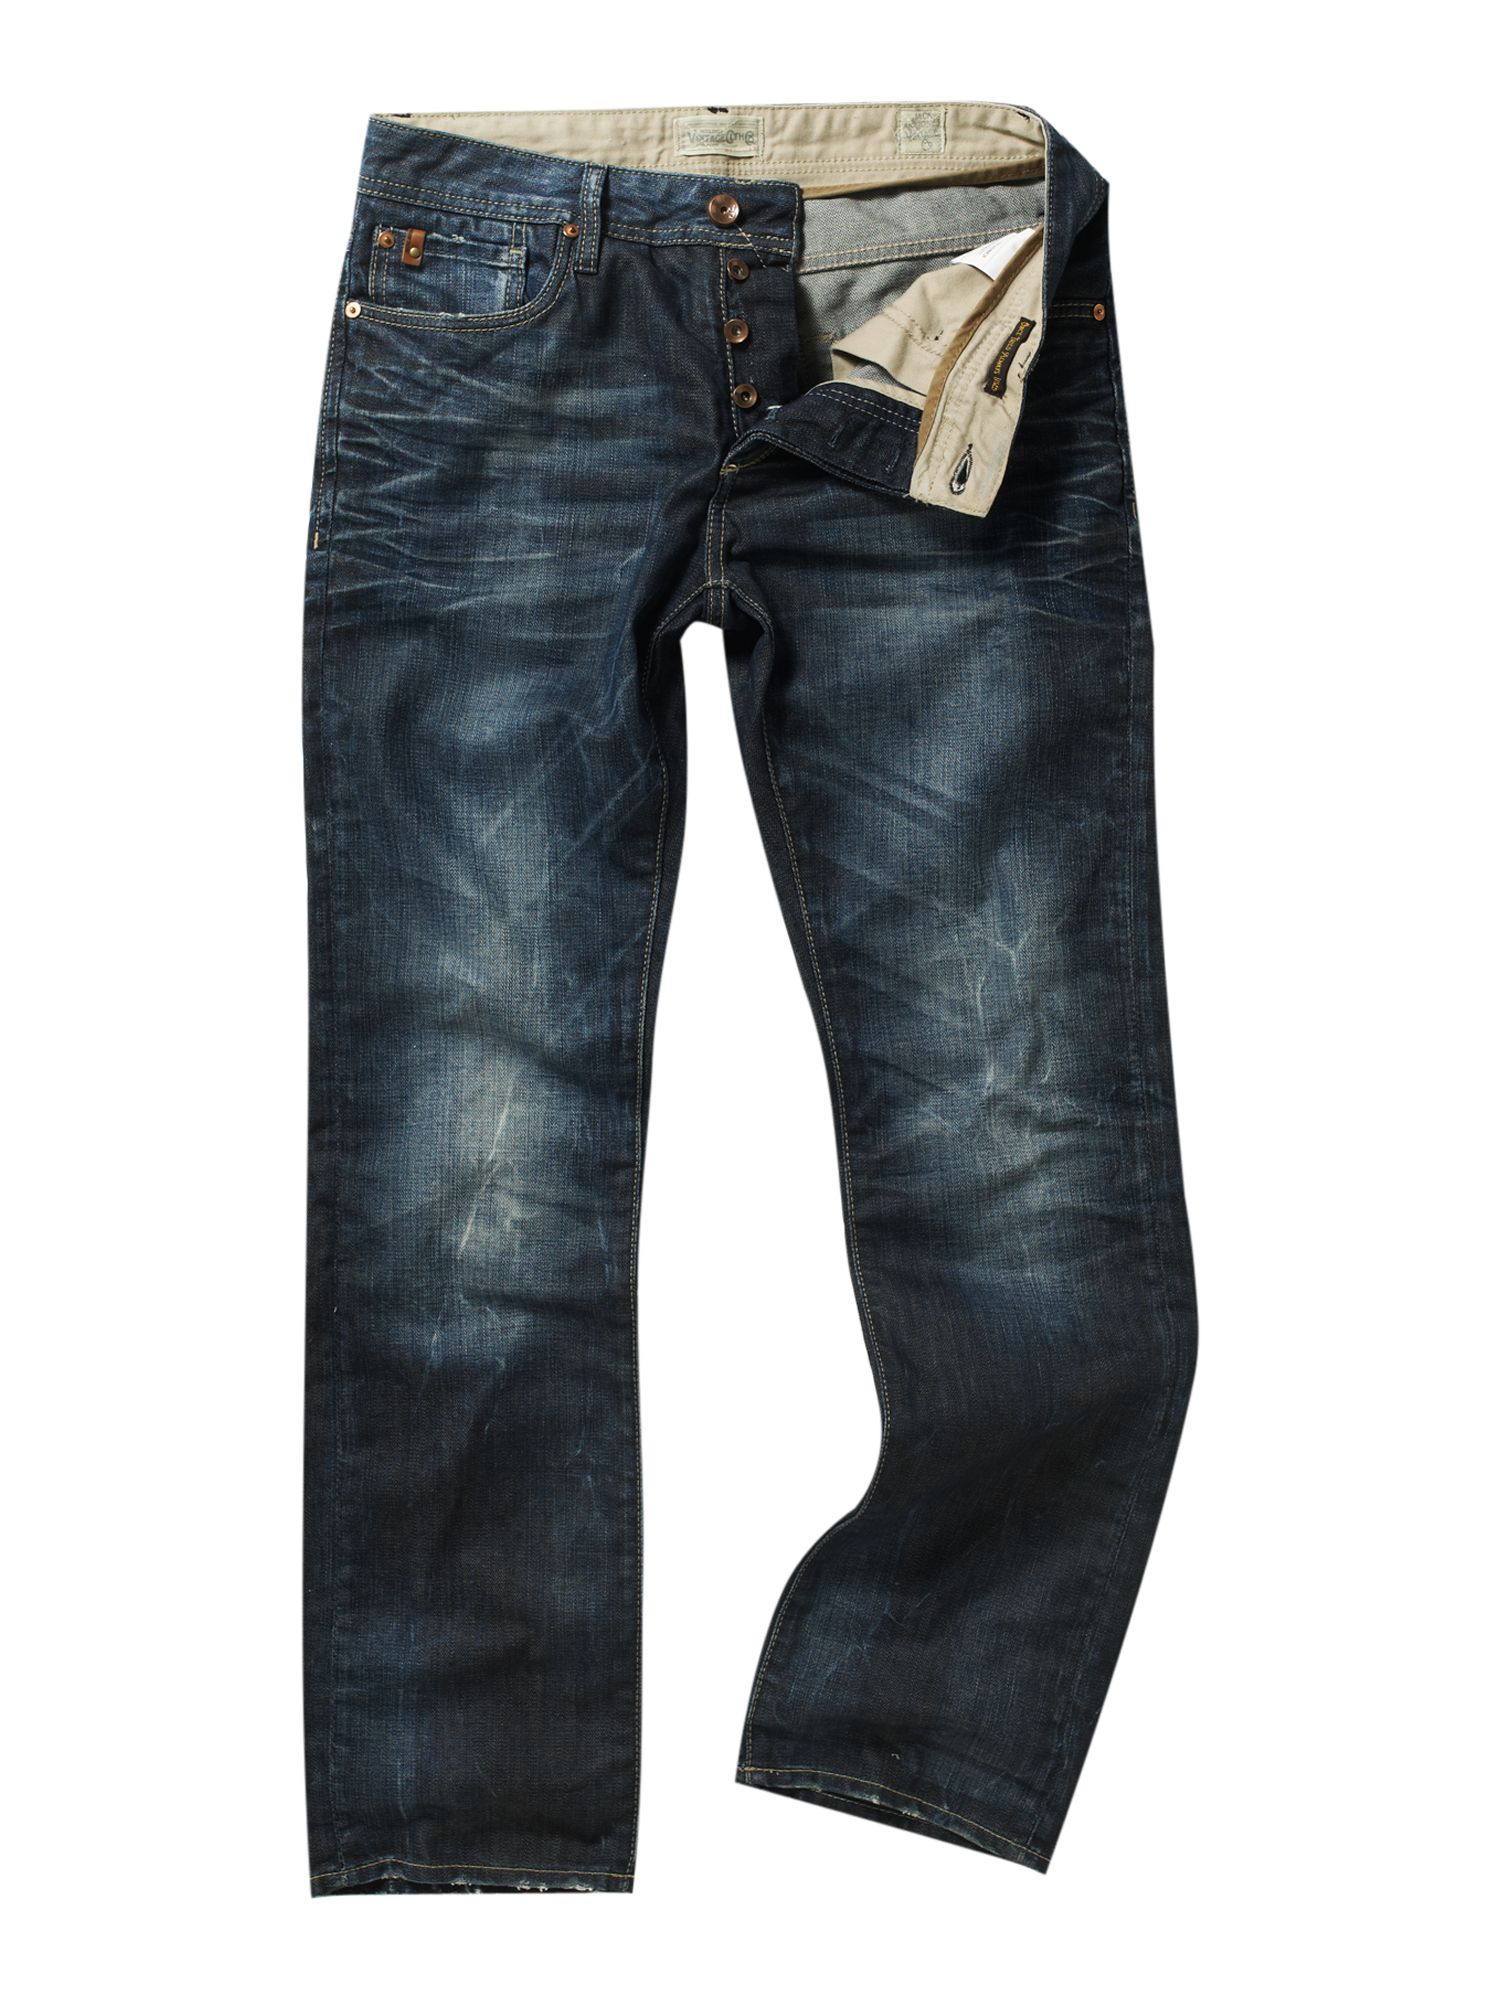 Clark original 218 regular fit jeans